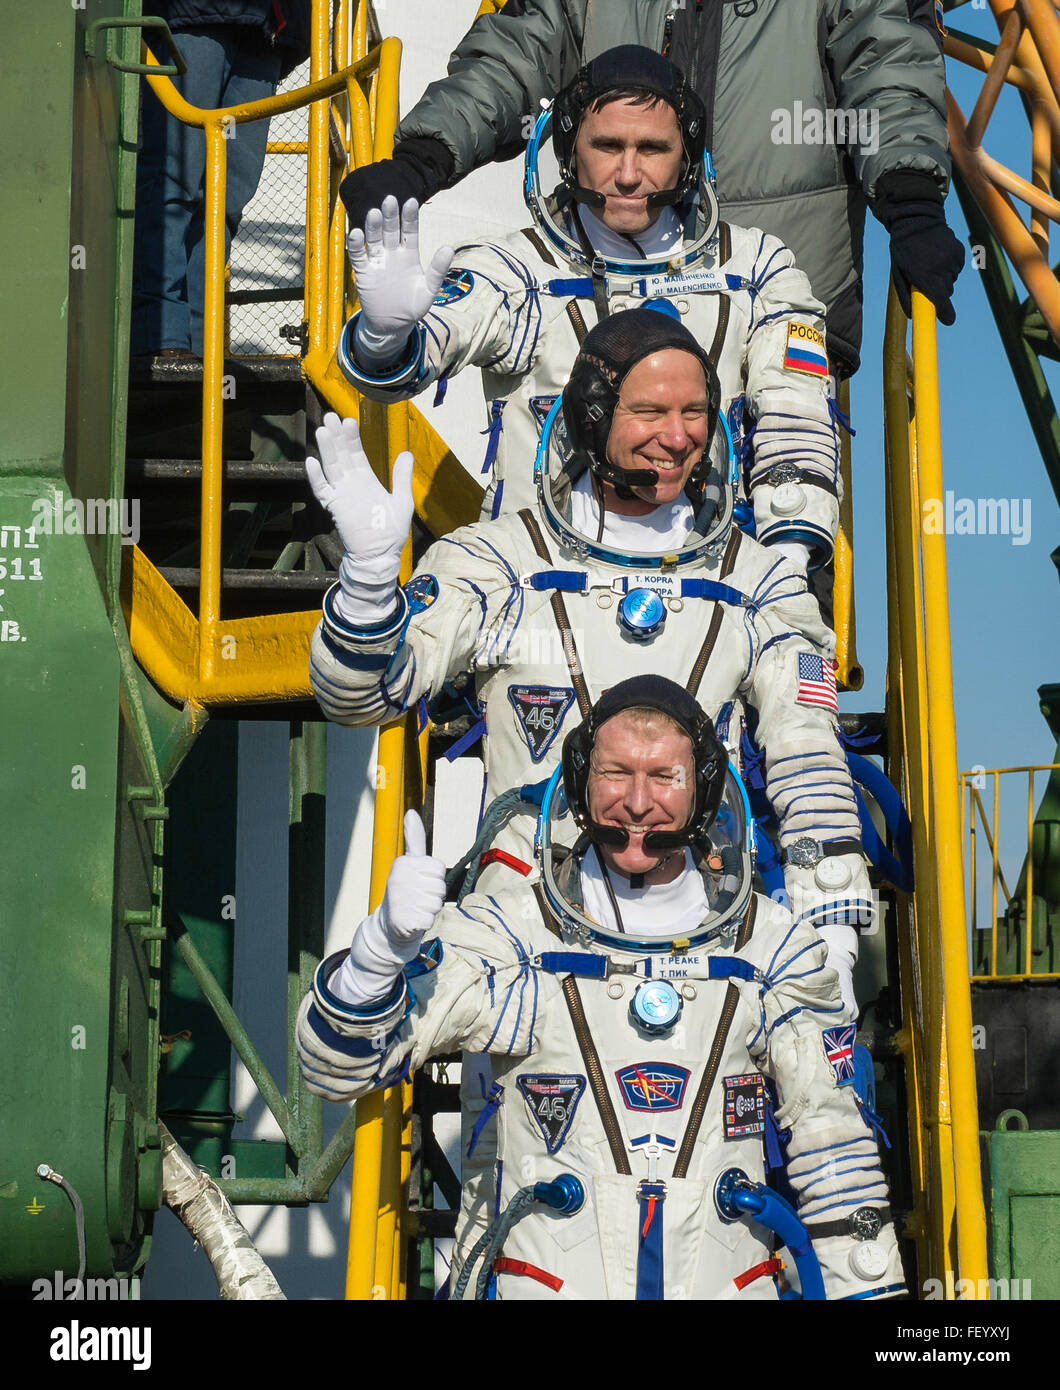 Expedition 46 Preflight 2 - Stock Image